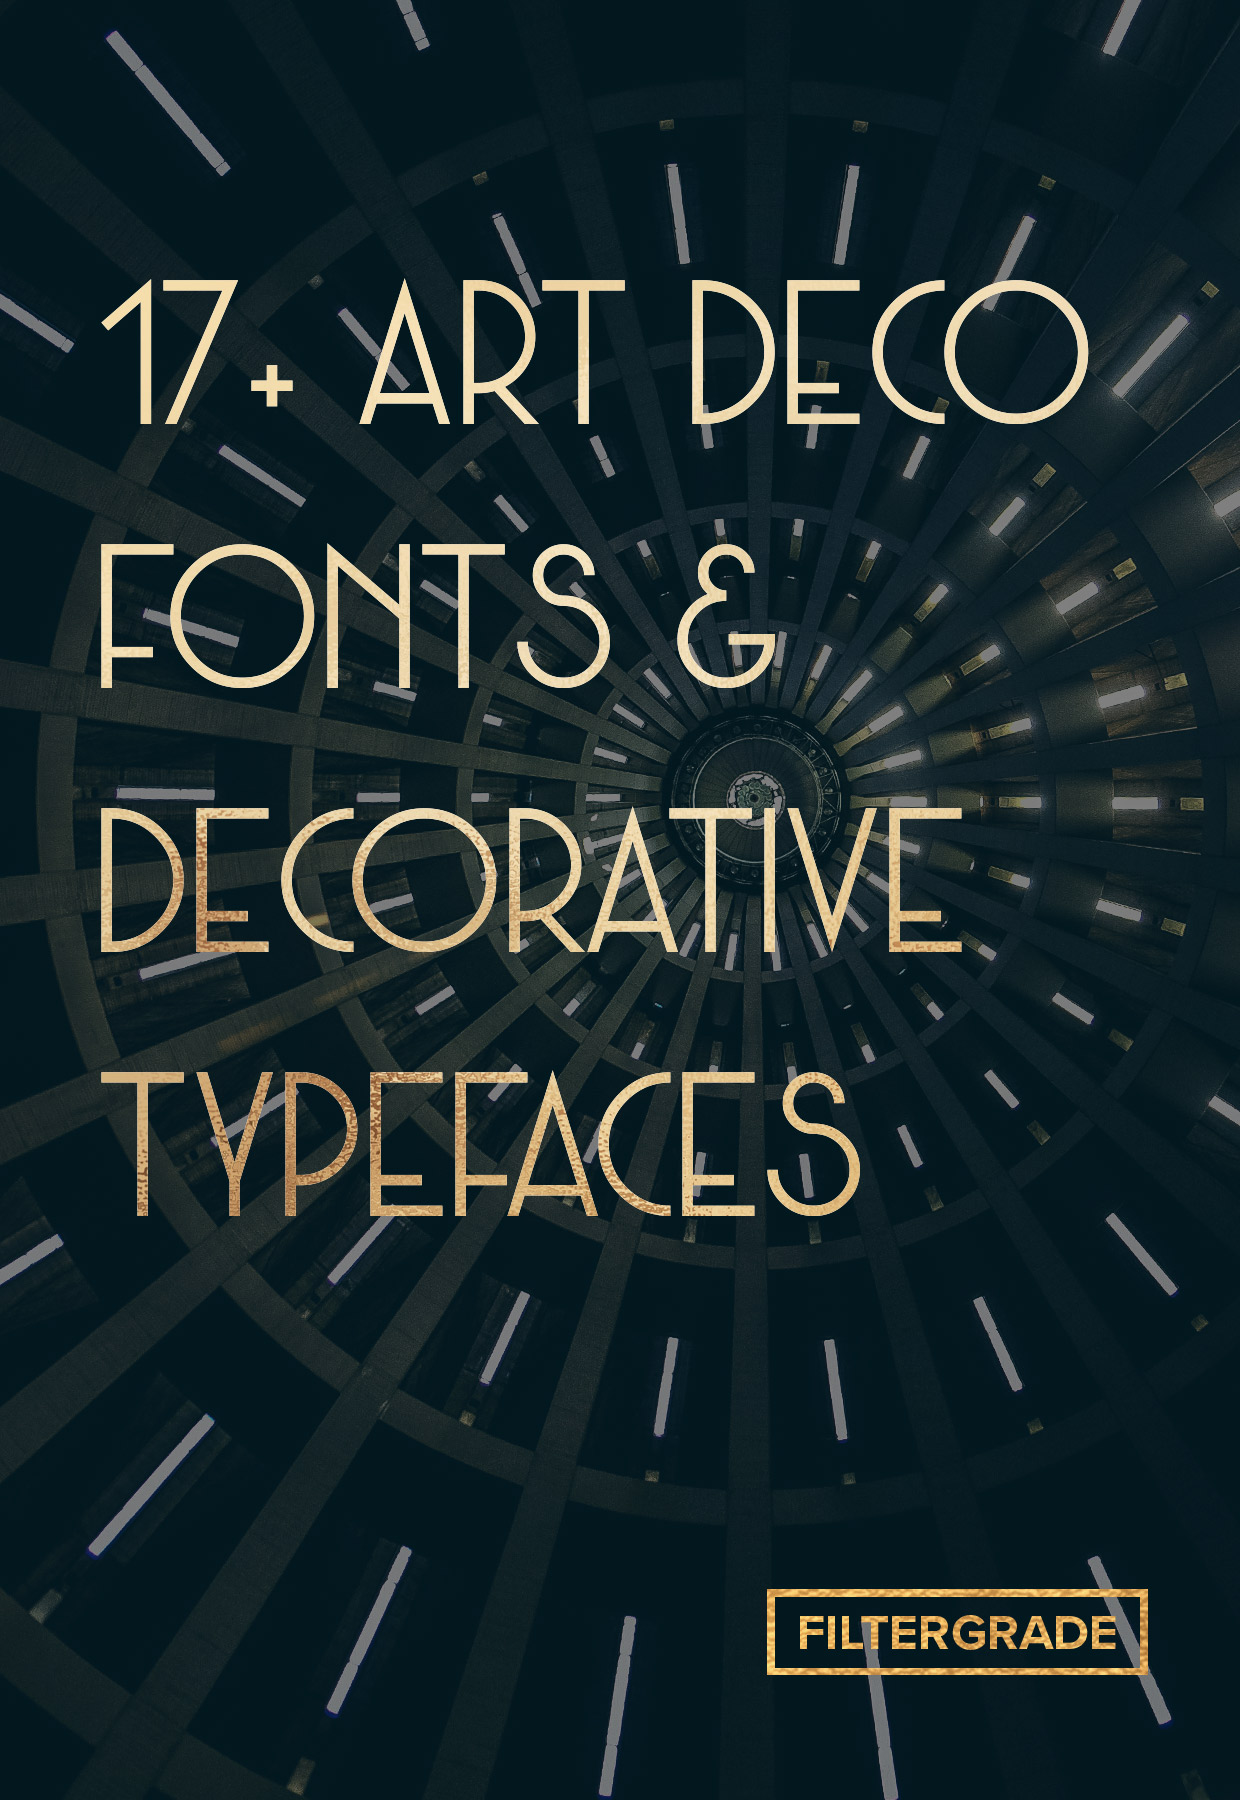 Discover 17+ beautiful art deco fonts and decorative typefaces to try.